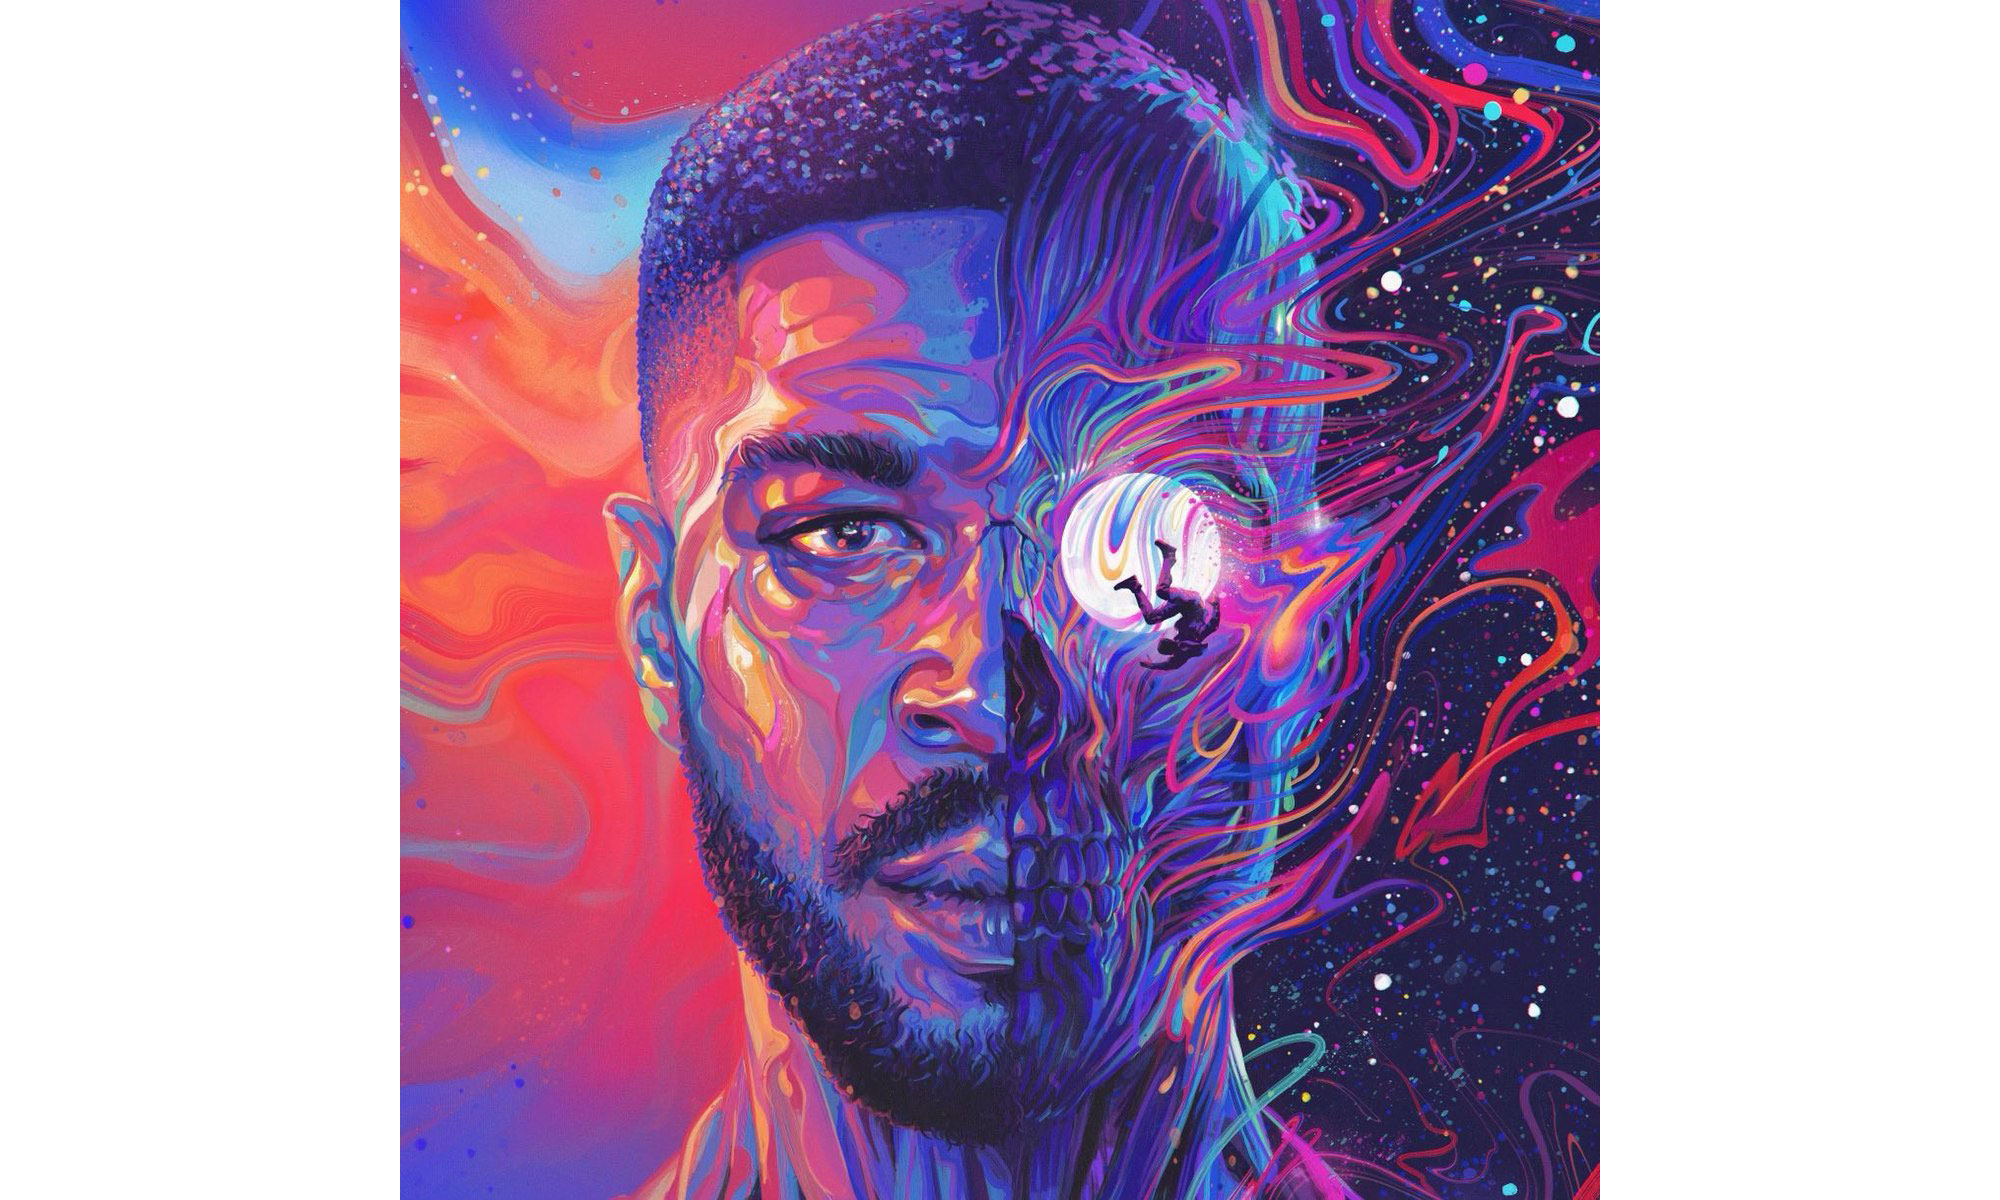 Kid Cudi 新专辑《Man On The Moon: The Chosen》正式发布